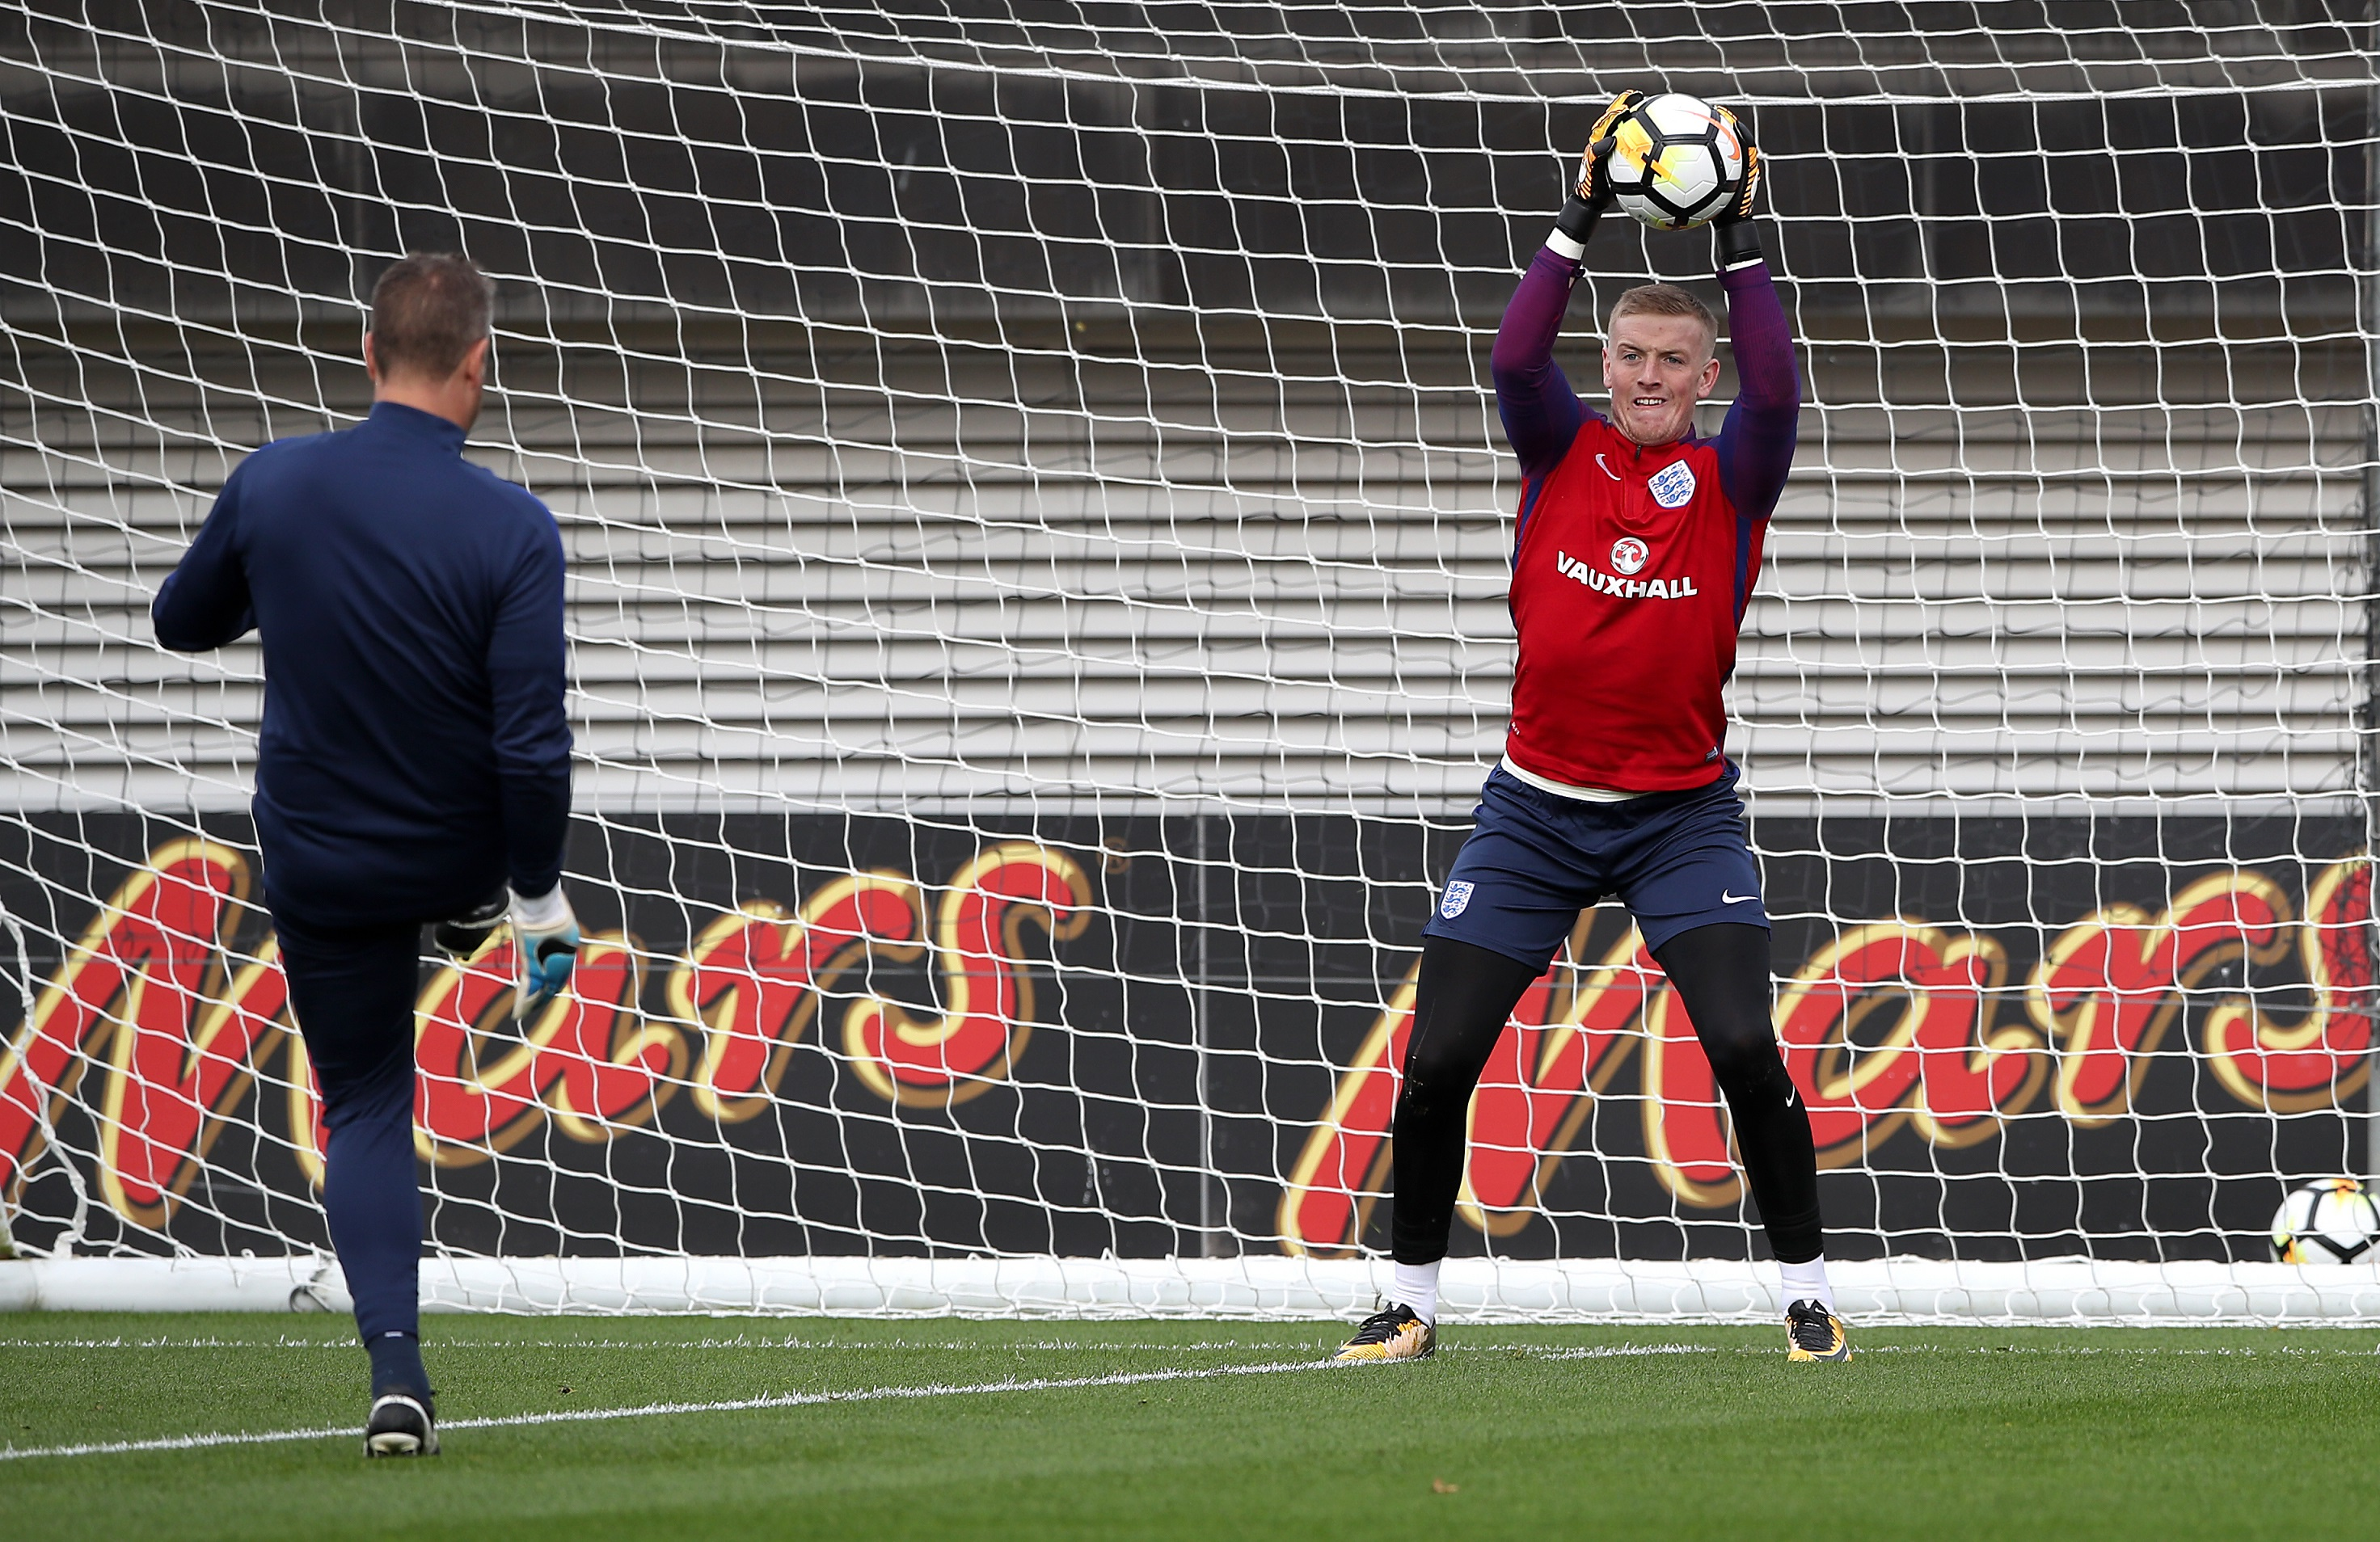 Jordan Pickford trains with England